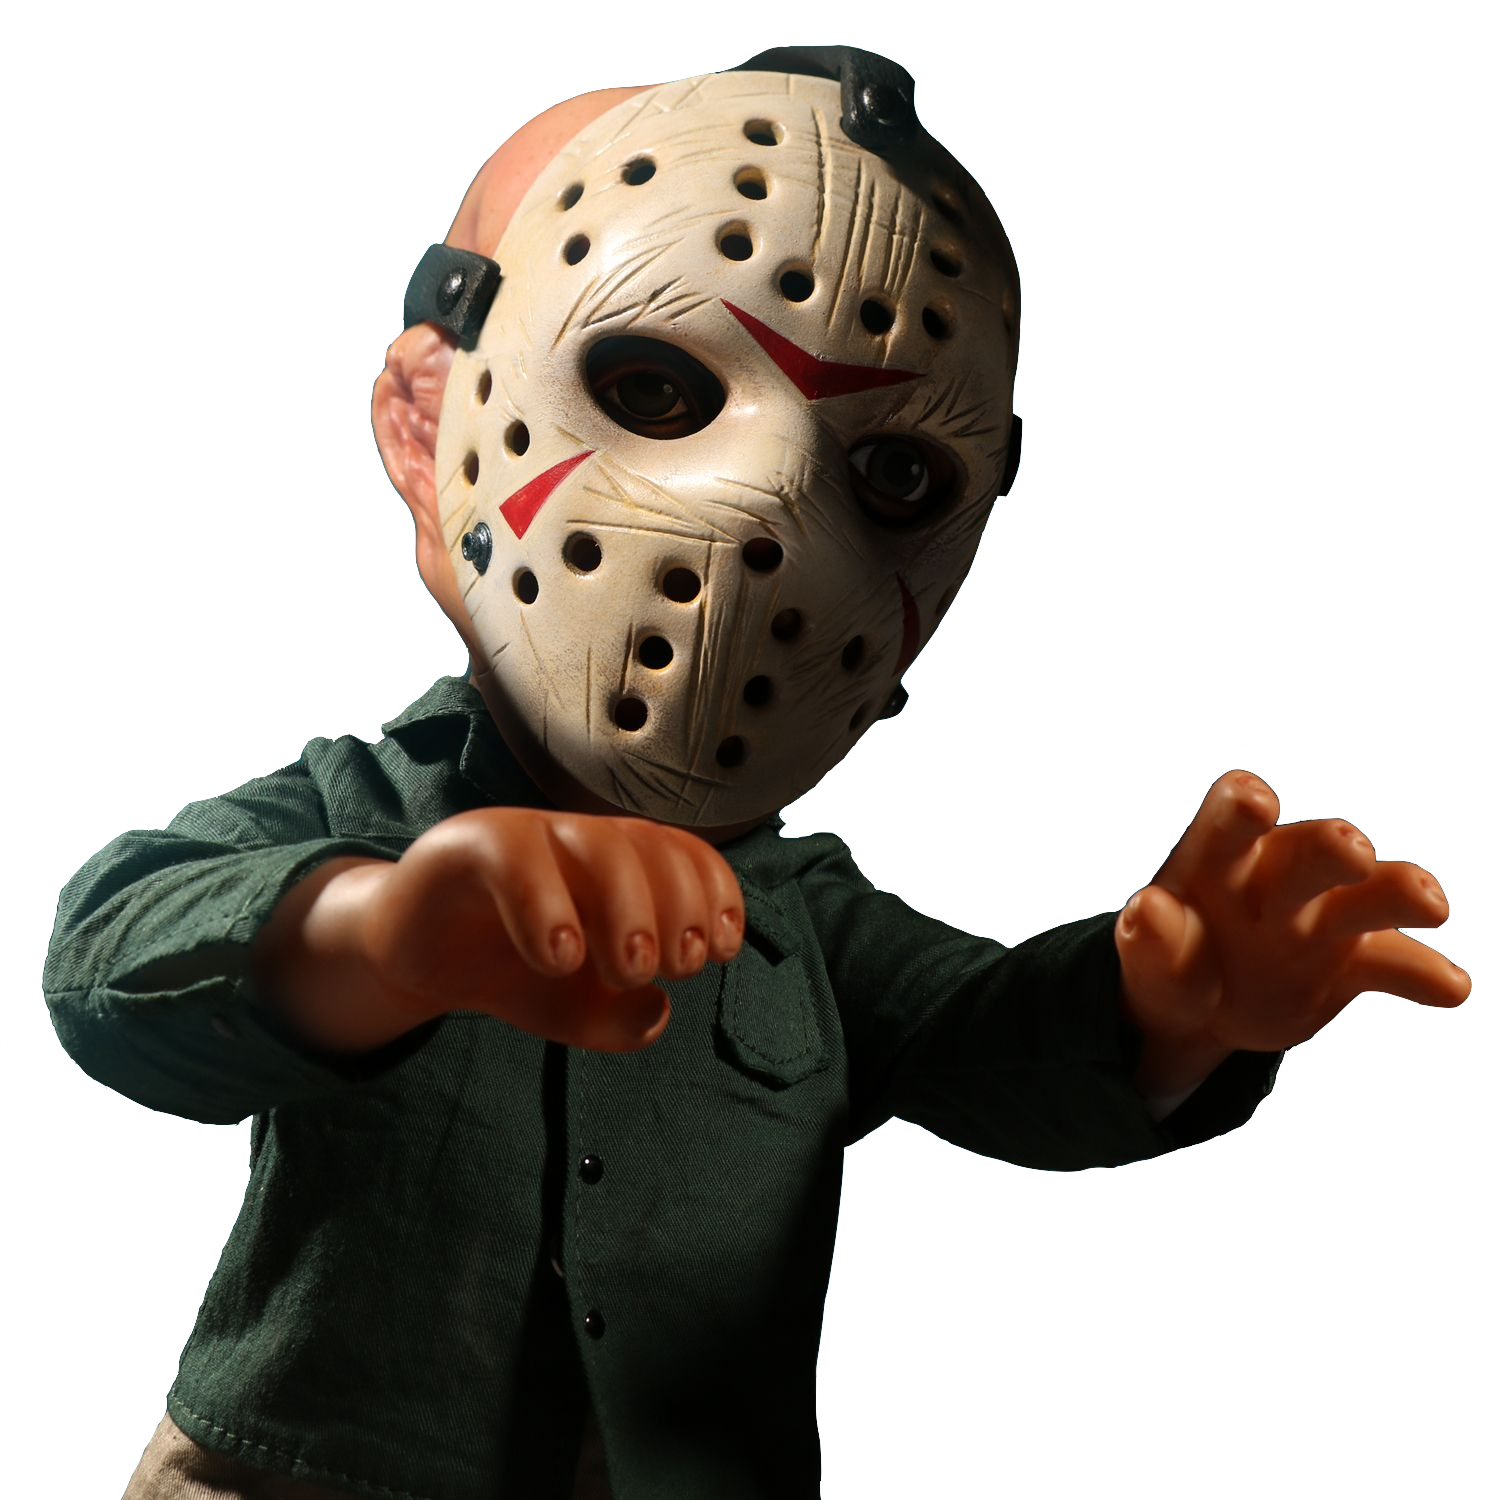 mezco-friday-the-13th-jason-voorhes-mega-figure-toyslife